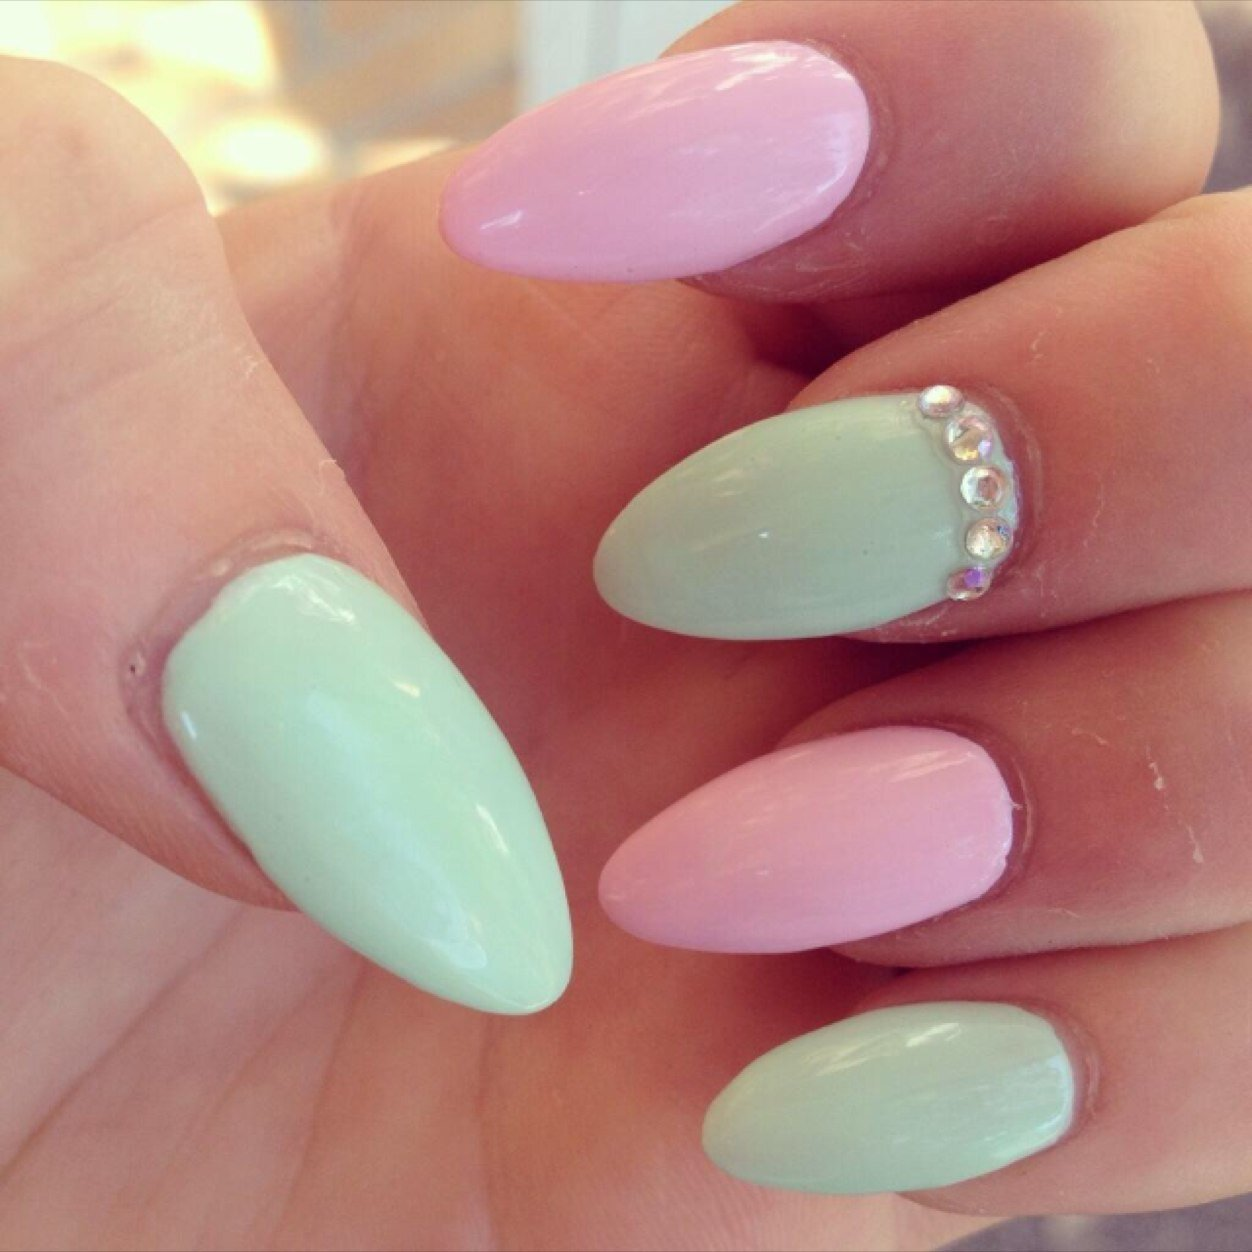 Exquisite Nails (@ExquisiteNails_) | Twitter